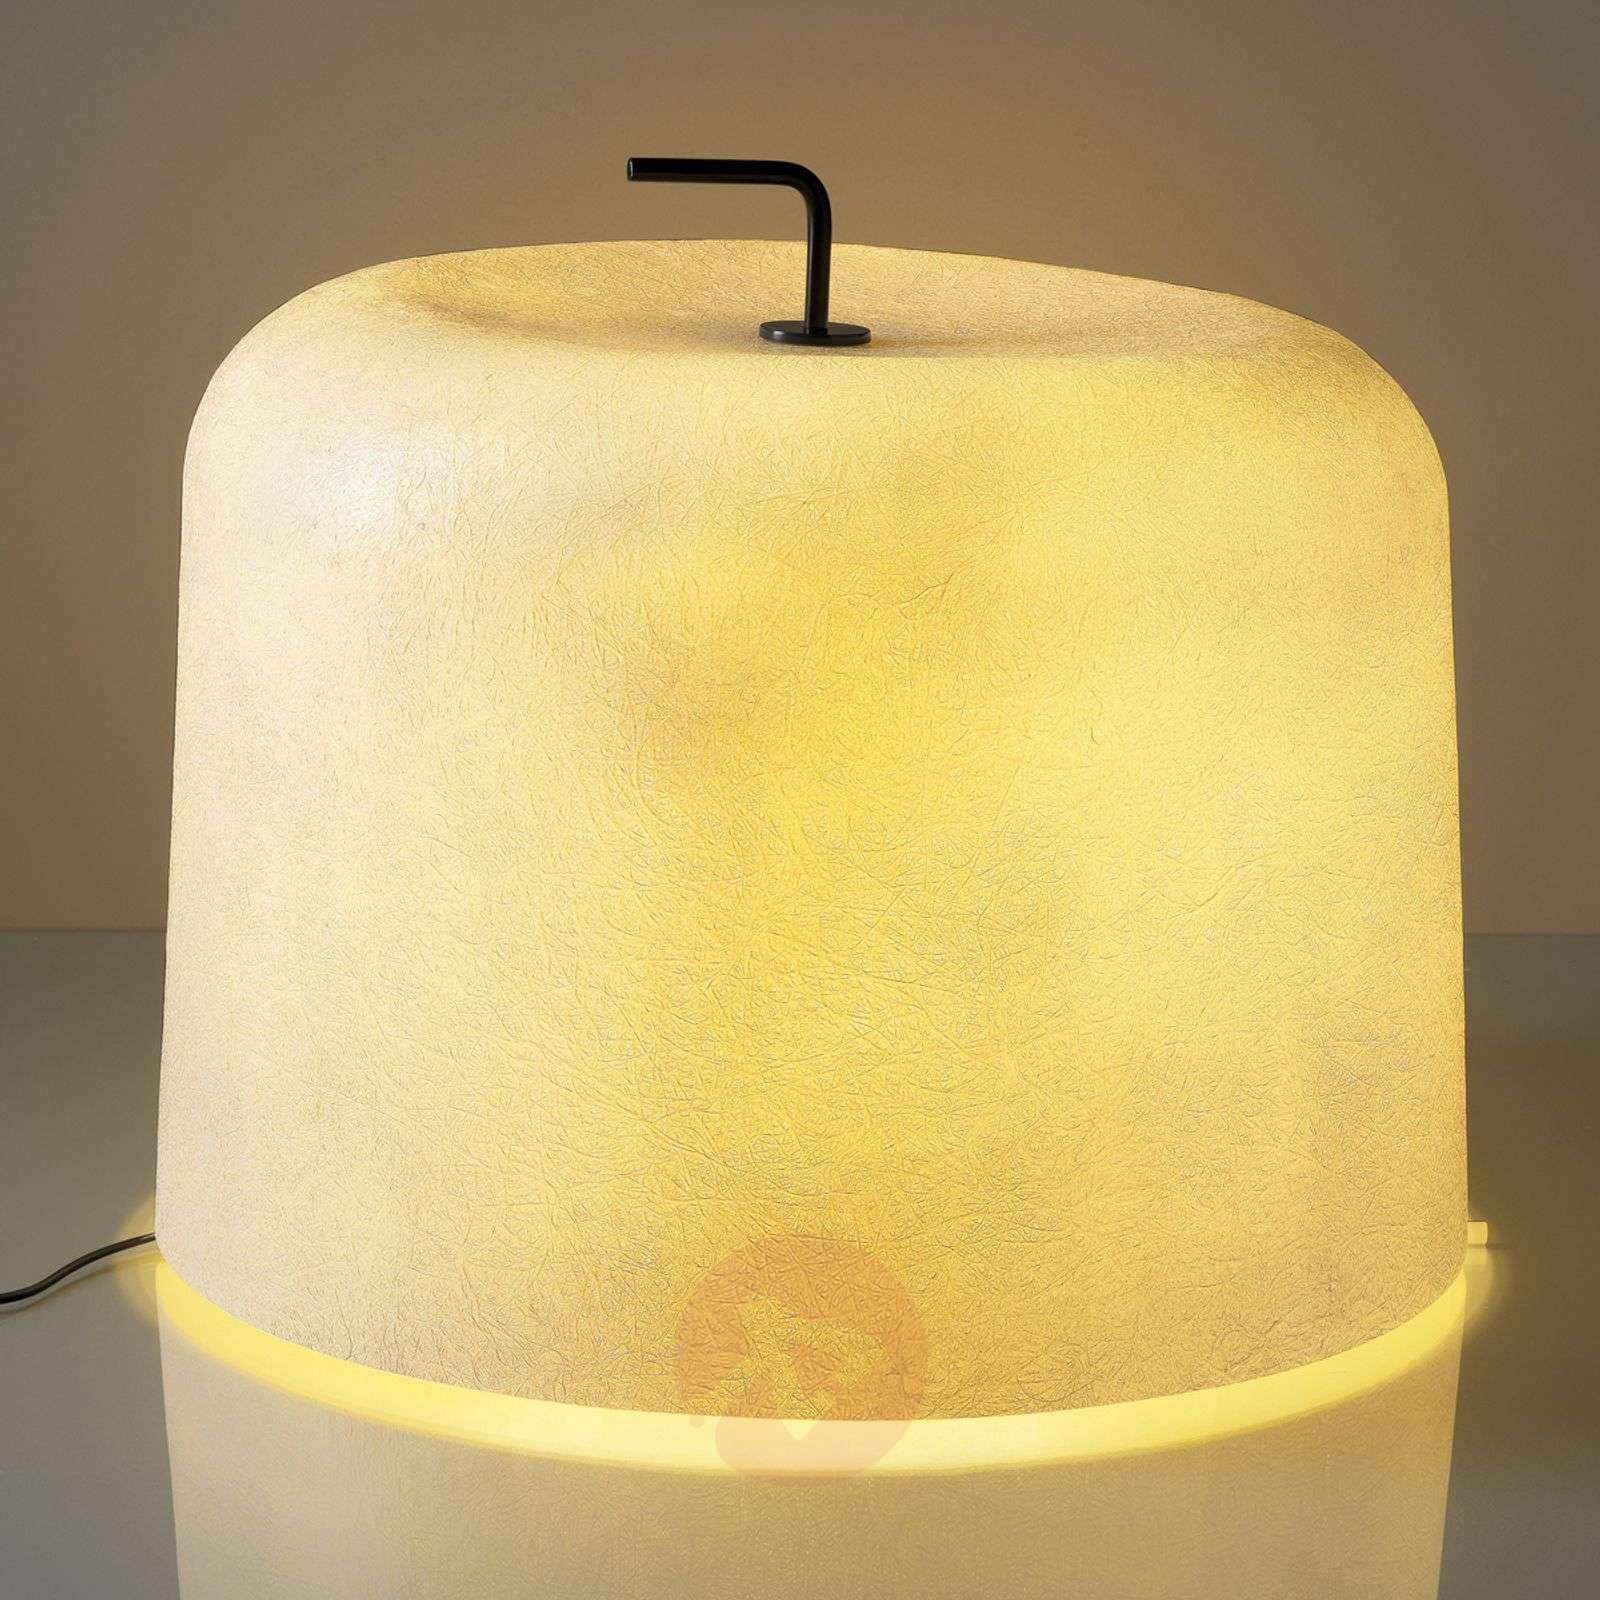 Floor lamp Ola Move with fibre glass lampshade-5501142X-01